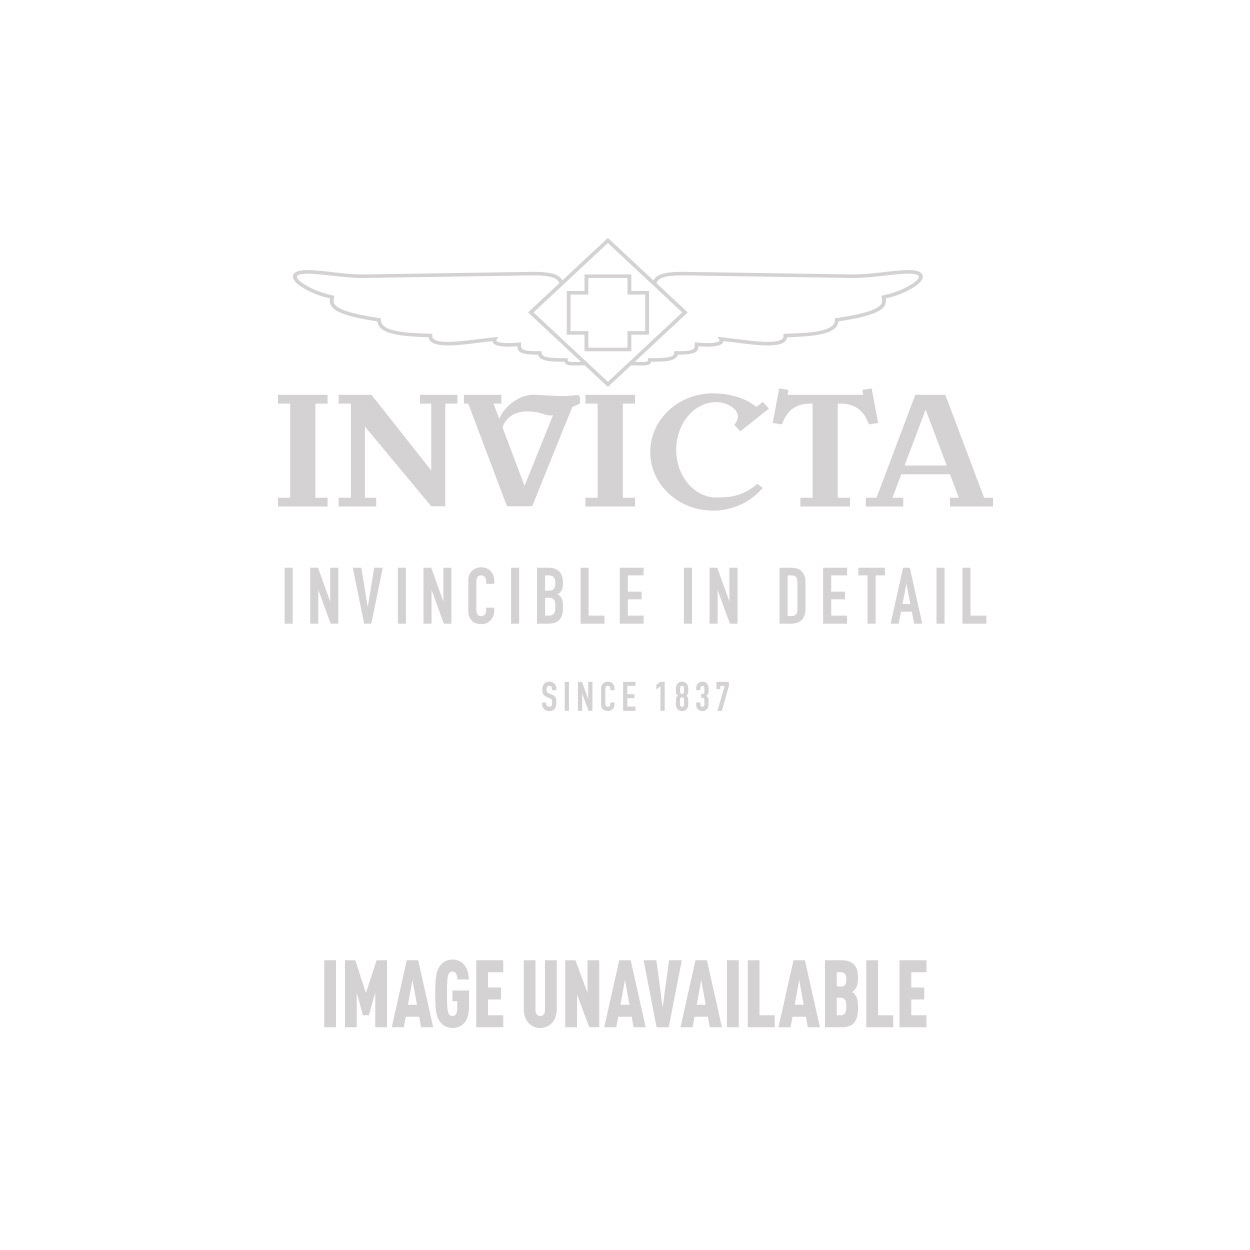 Invicta Angel Quartz Watch - Stainless Steel case Stainless Steel band - Model 20265